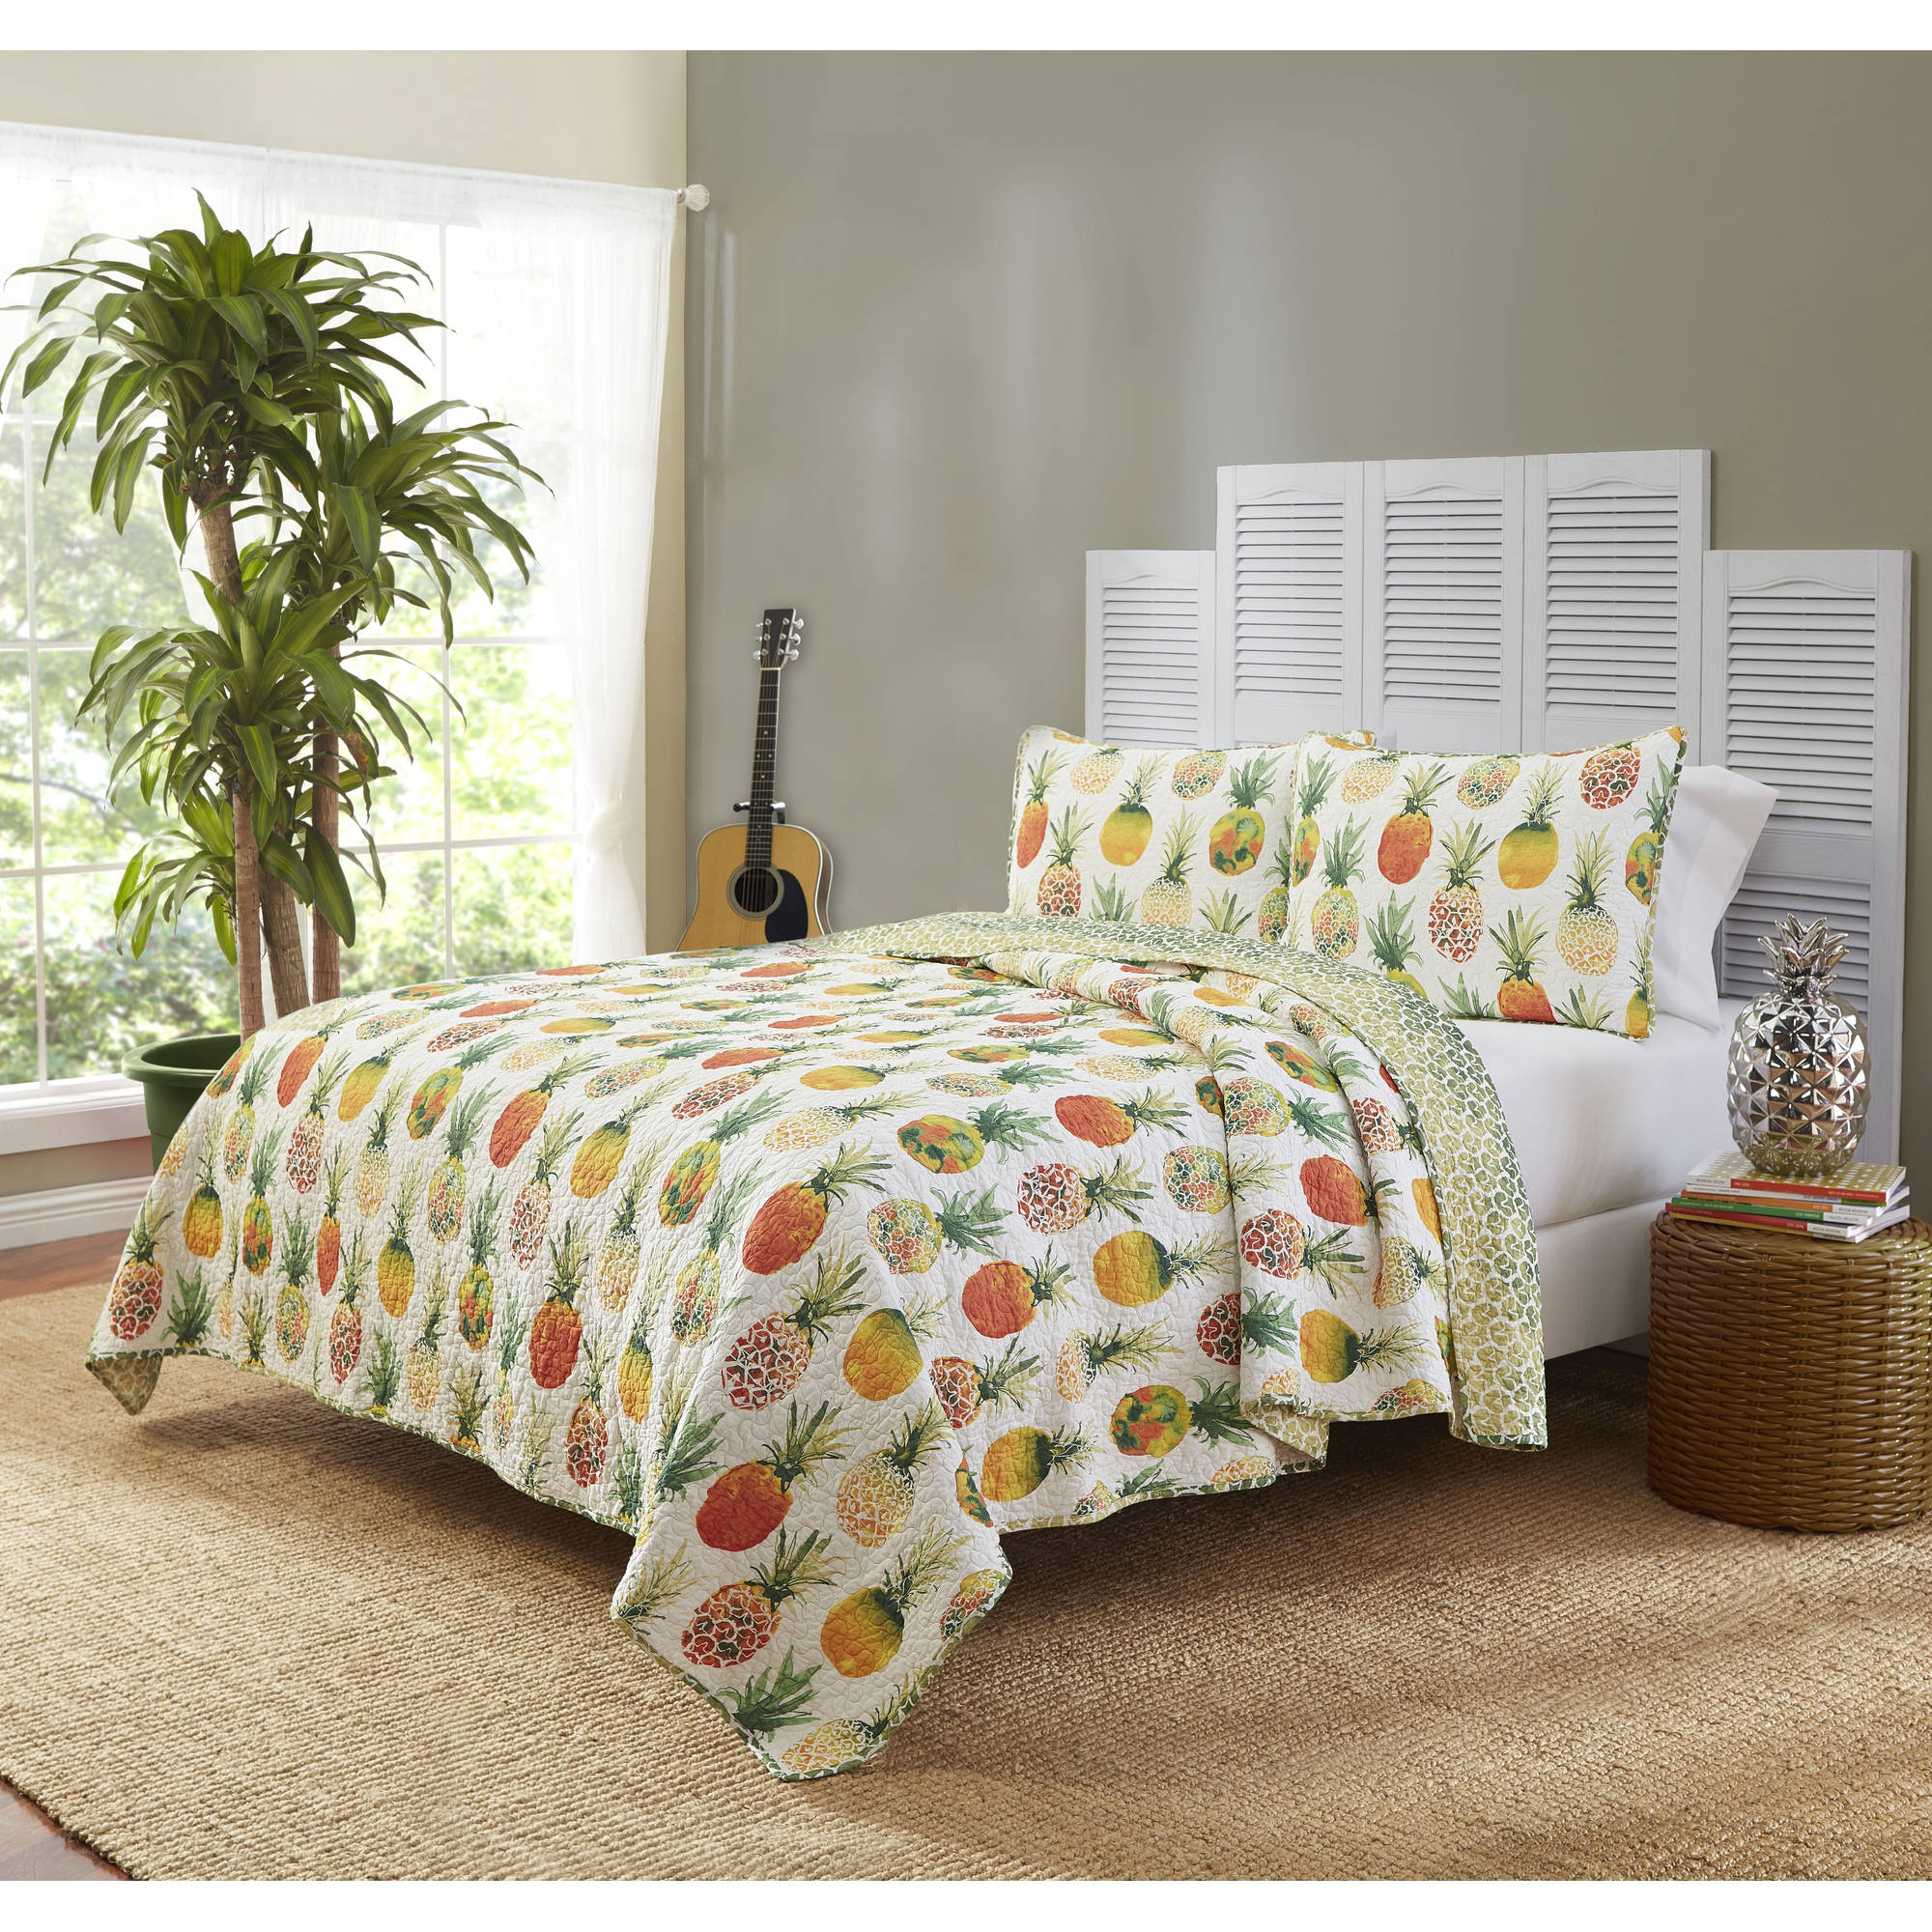 Mainstays Honolulu Reversible 3-Piece Bedding Quilt Set